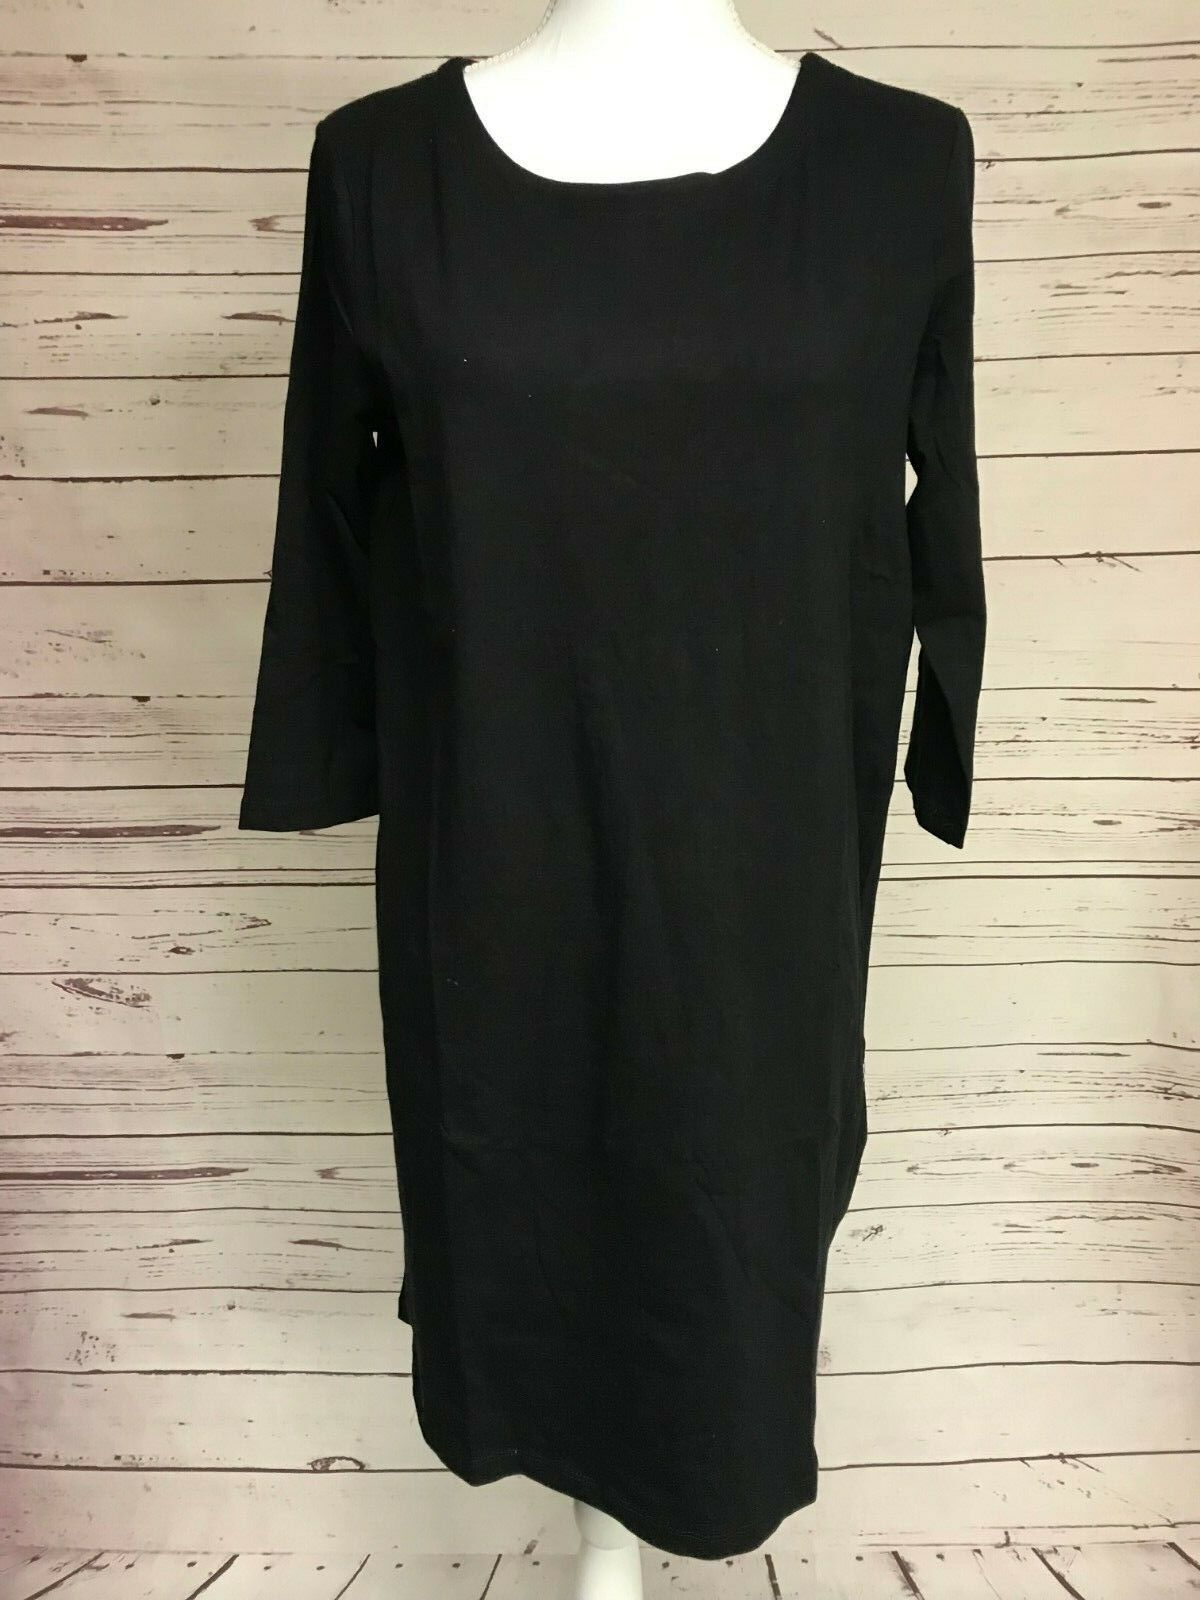 Zenana Outfitters Black V-Neck Dress Tunic Boutique Top S M